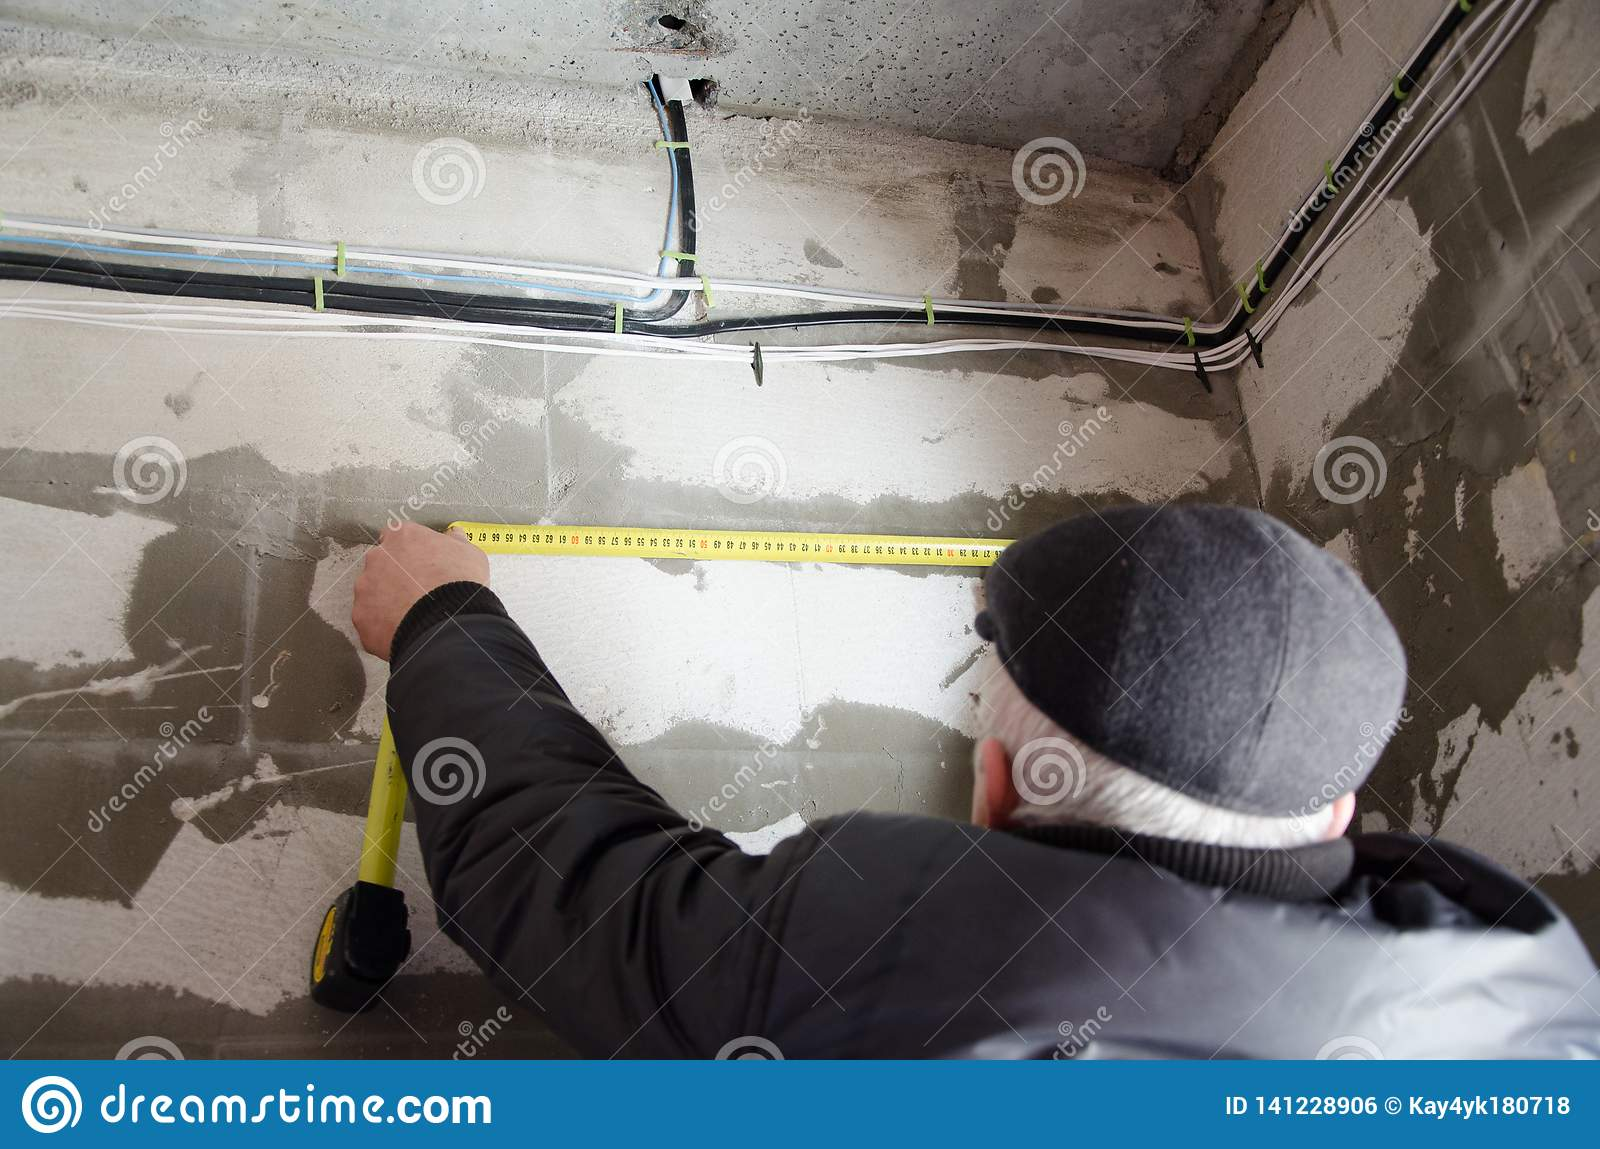 A man measures the wiring, accuracy is important